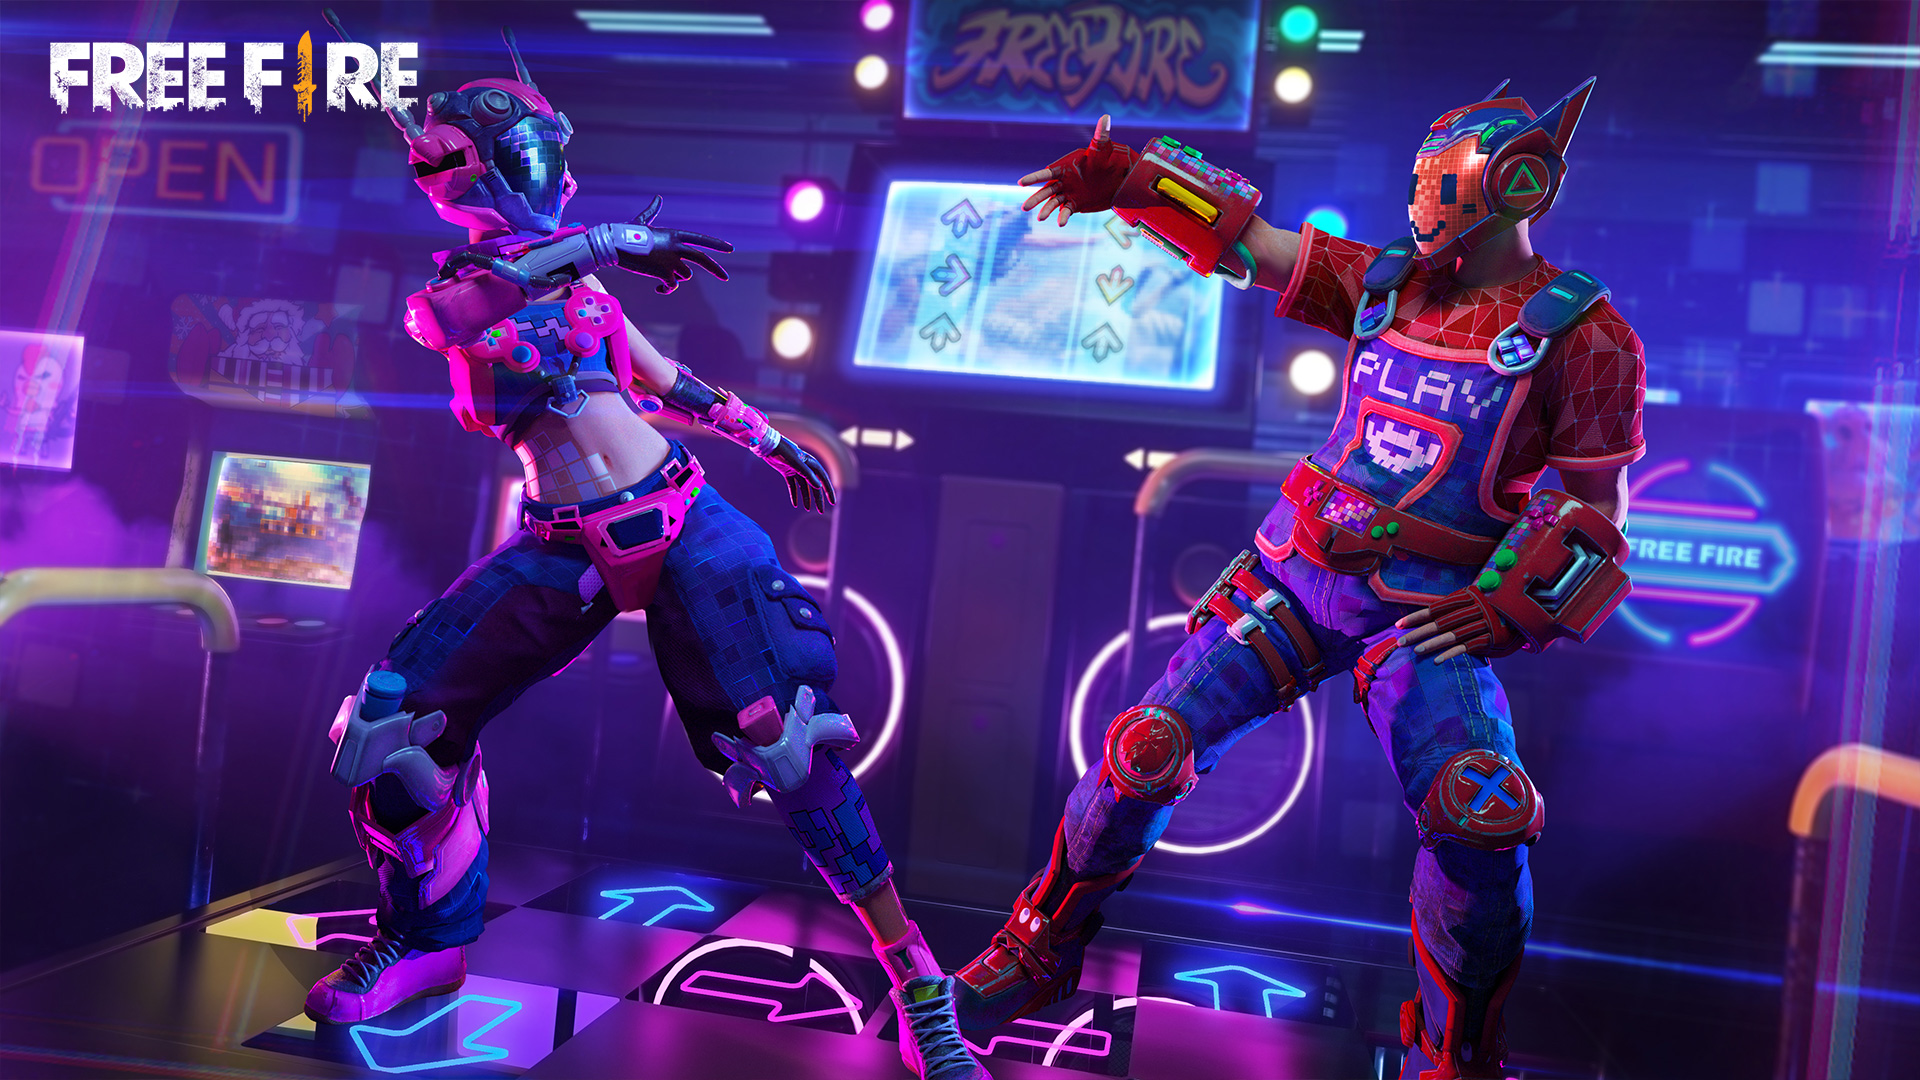 Kapella Patch Introduces New Character And Game Modes To Free Fire Dot Esports